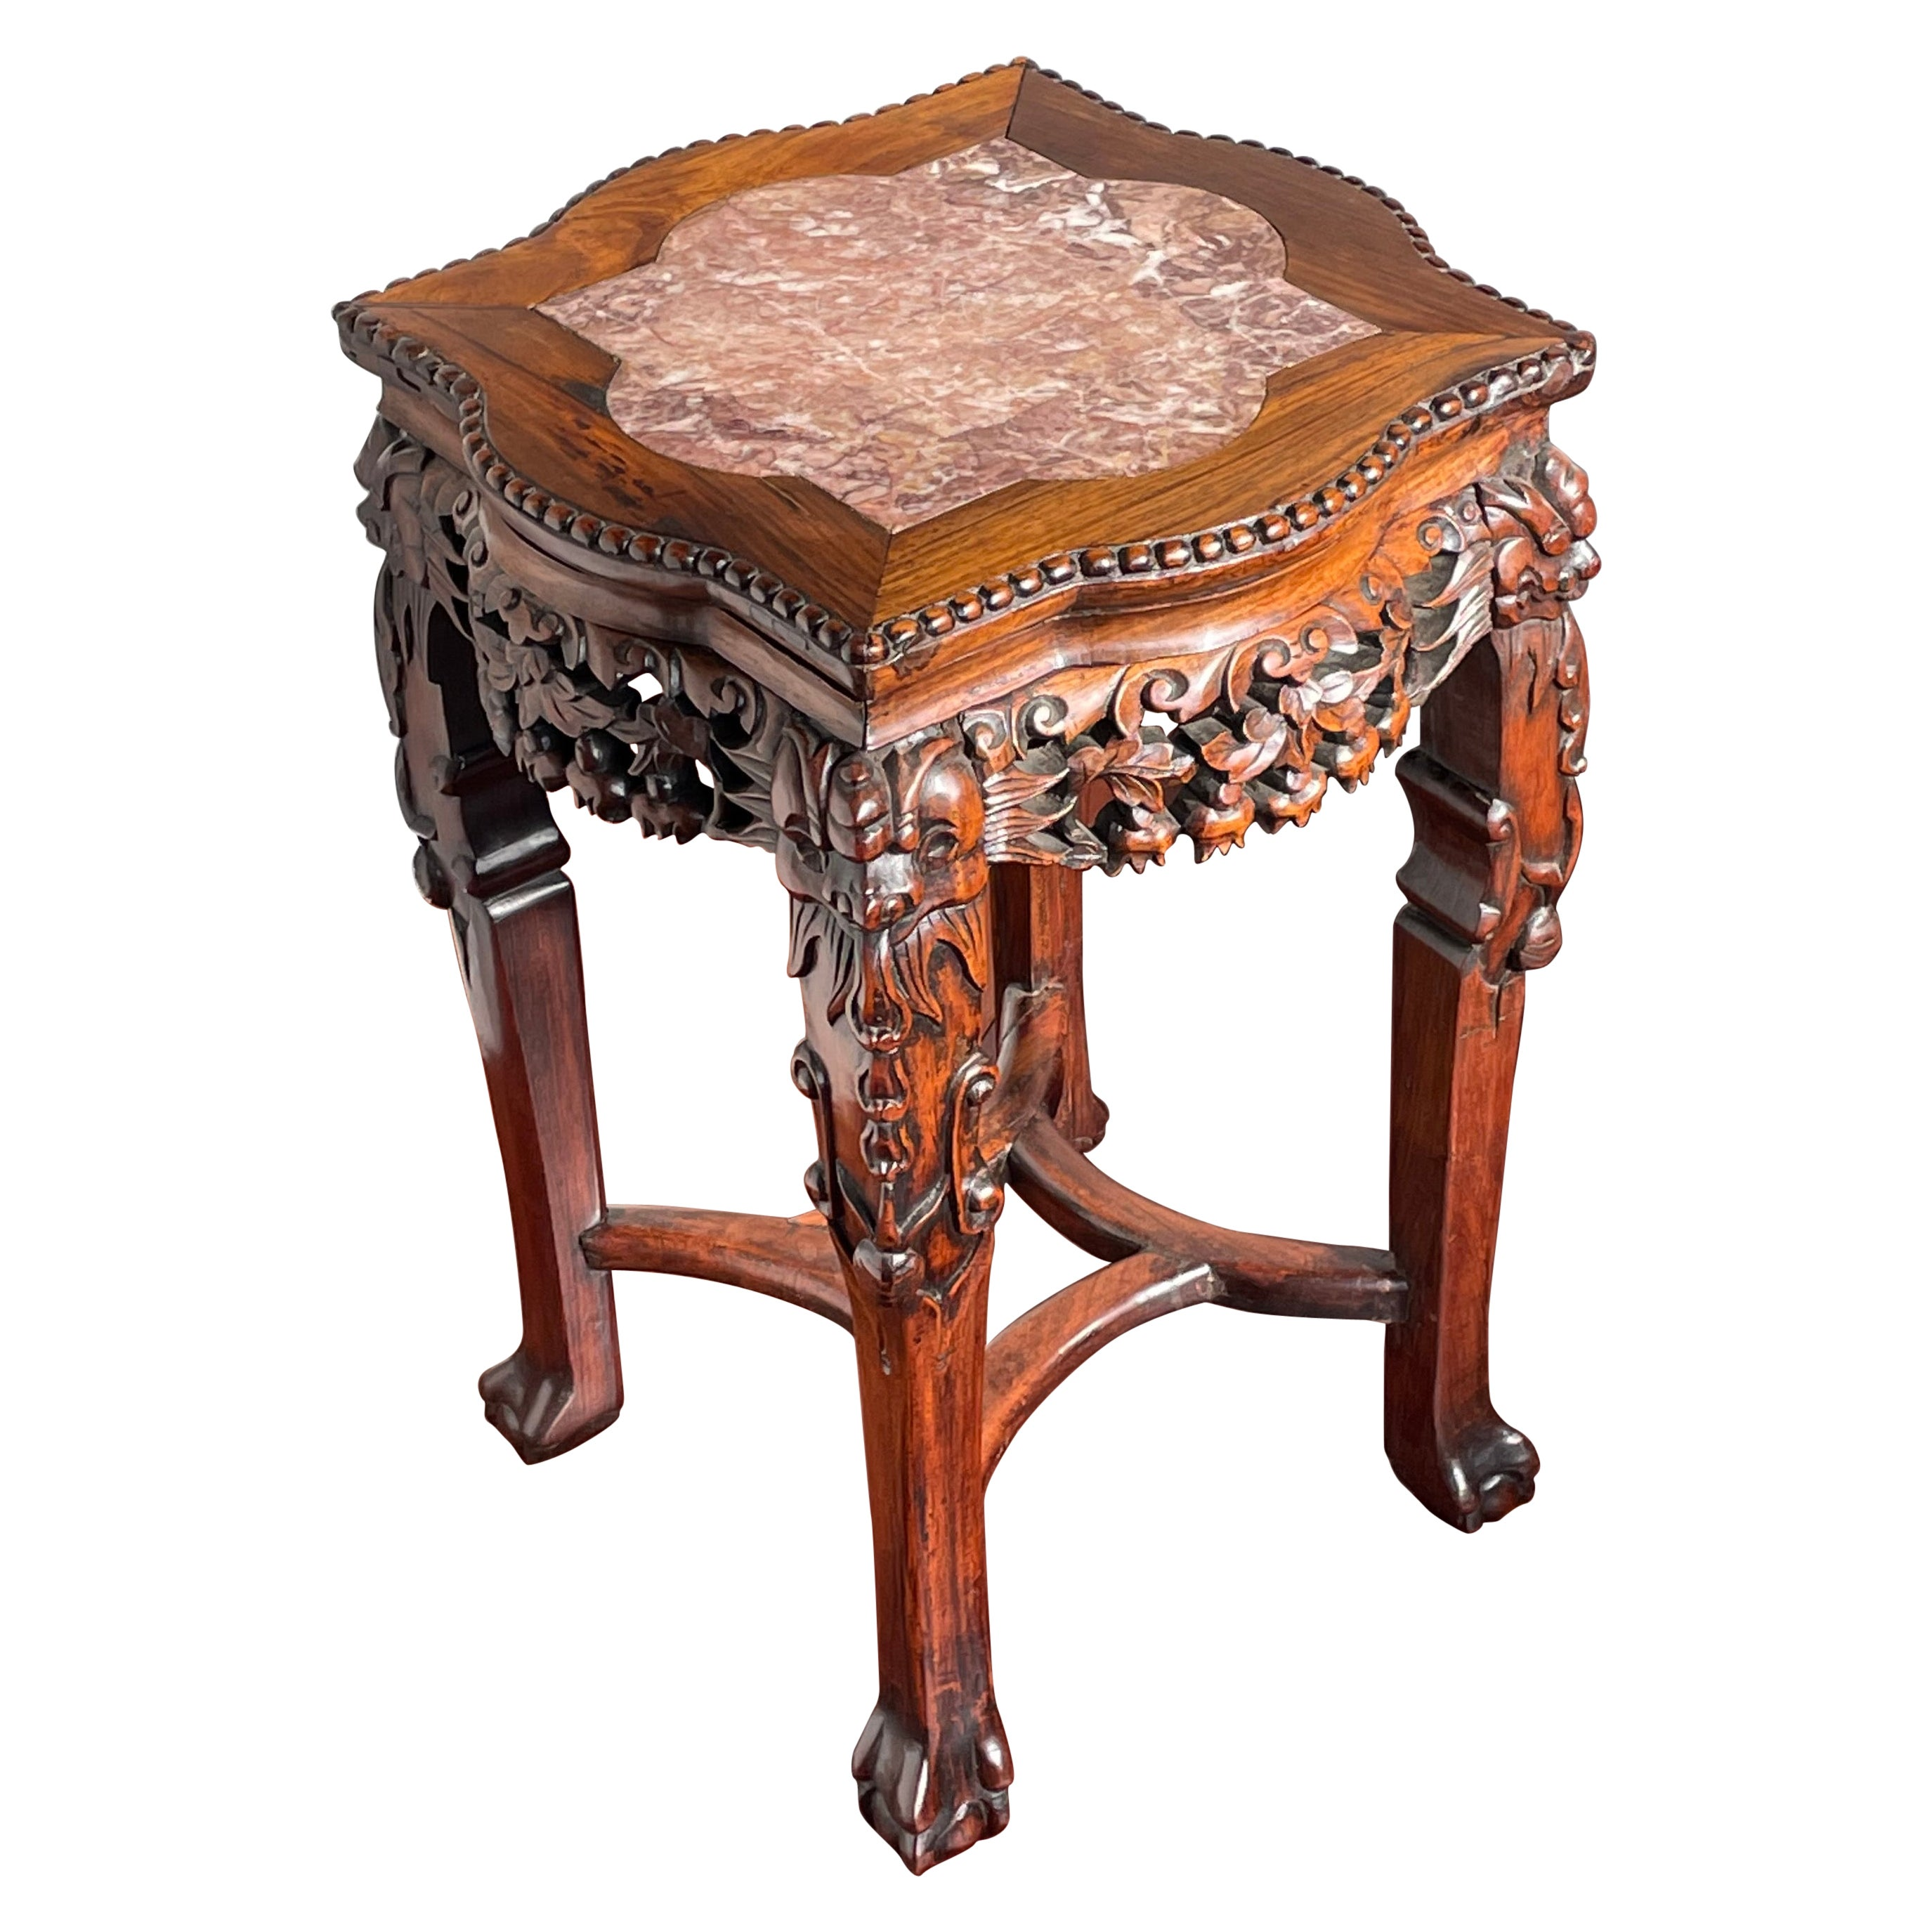 Antique Carved Chinese Mahogany & Marble Plant Stand / End Table with Signature